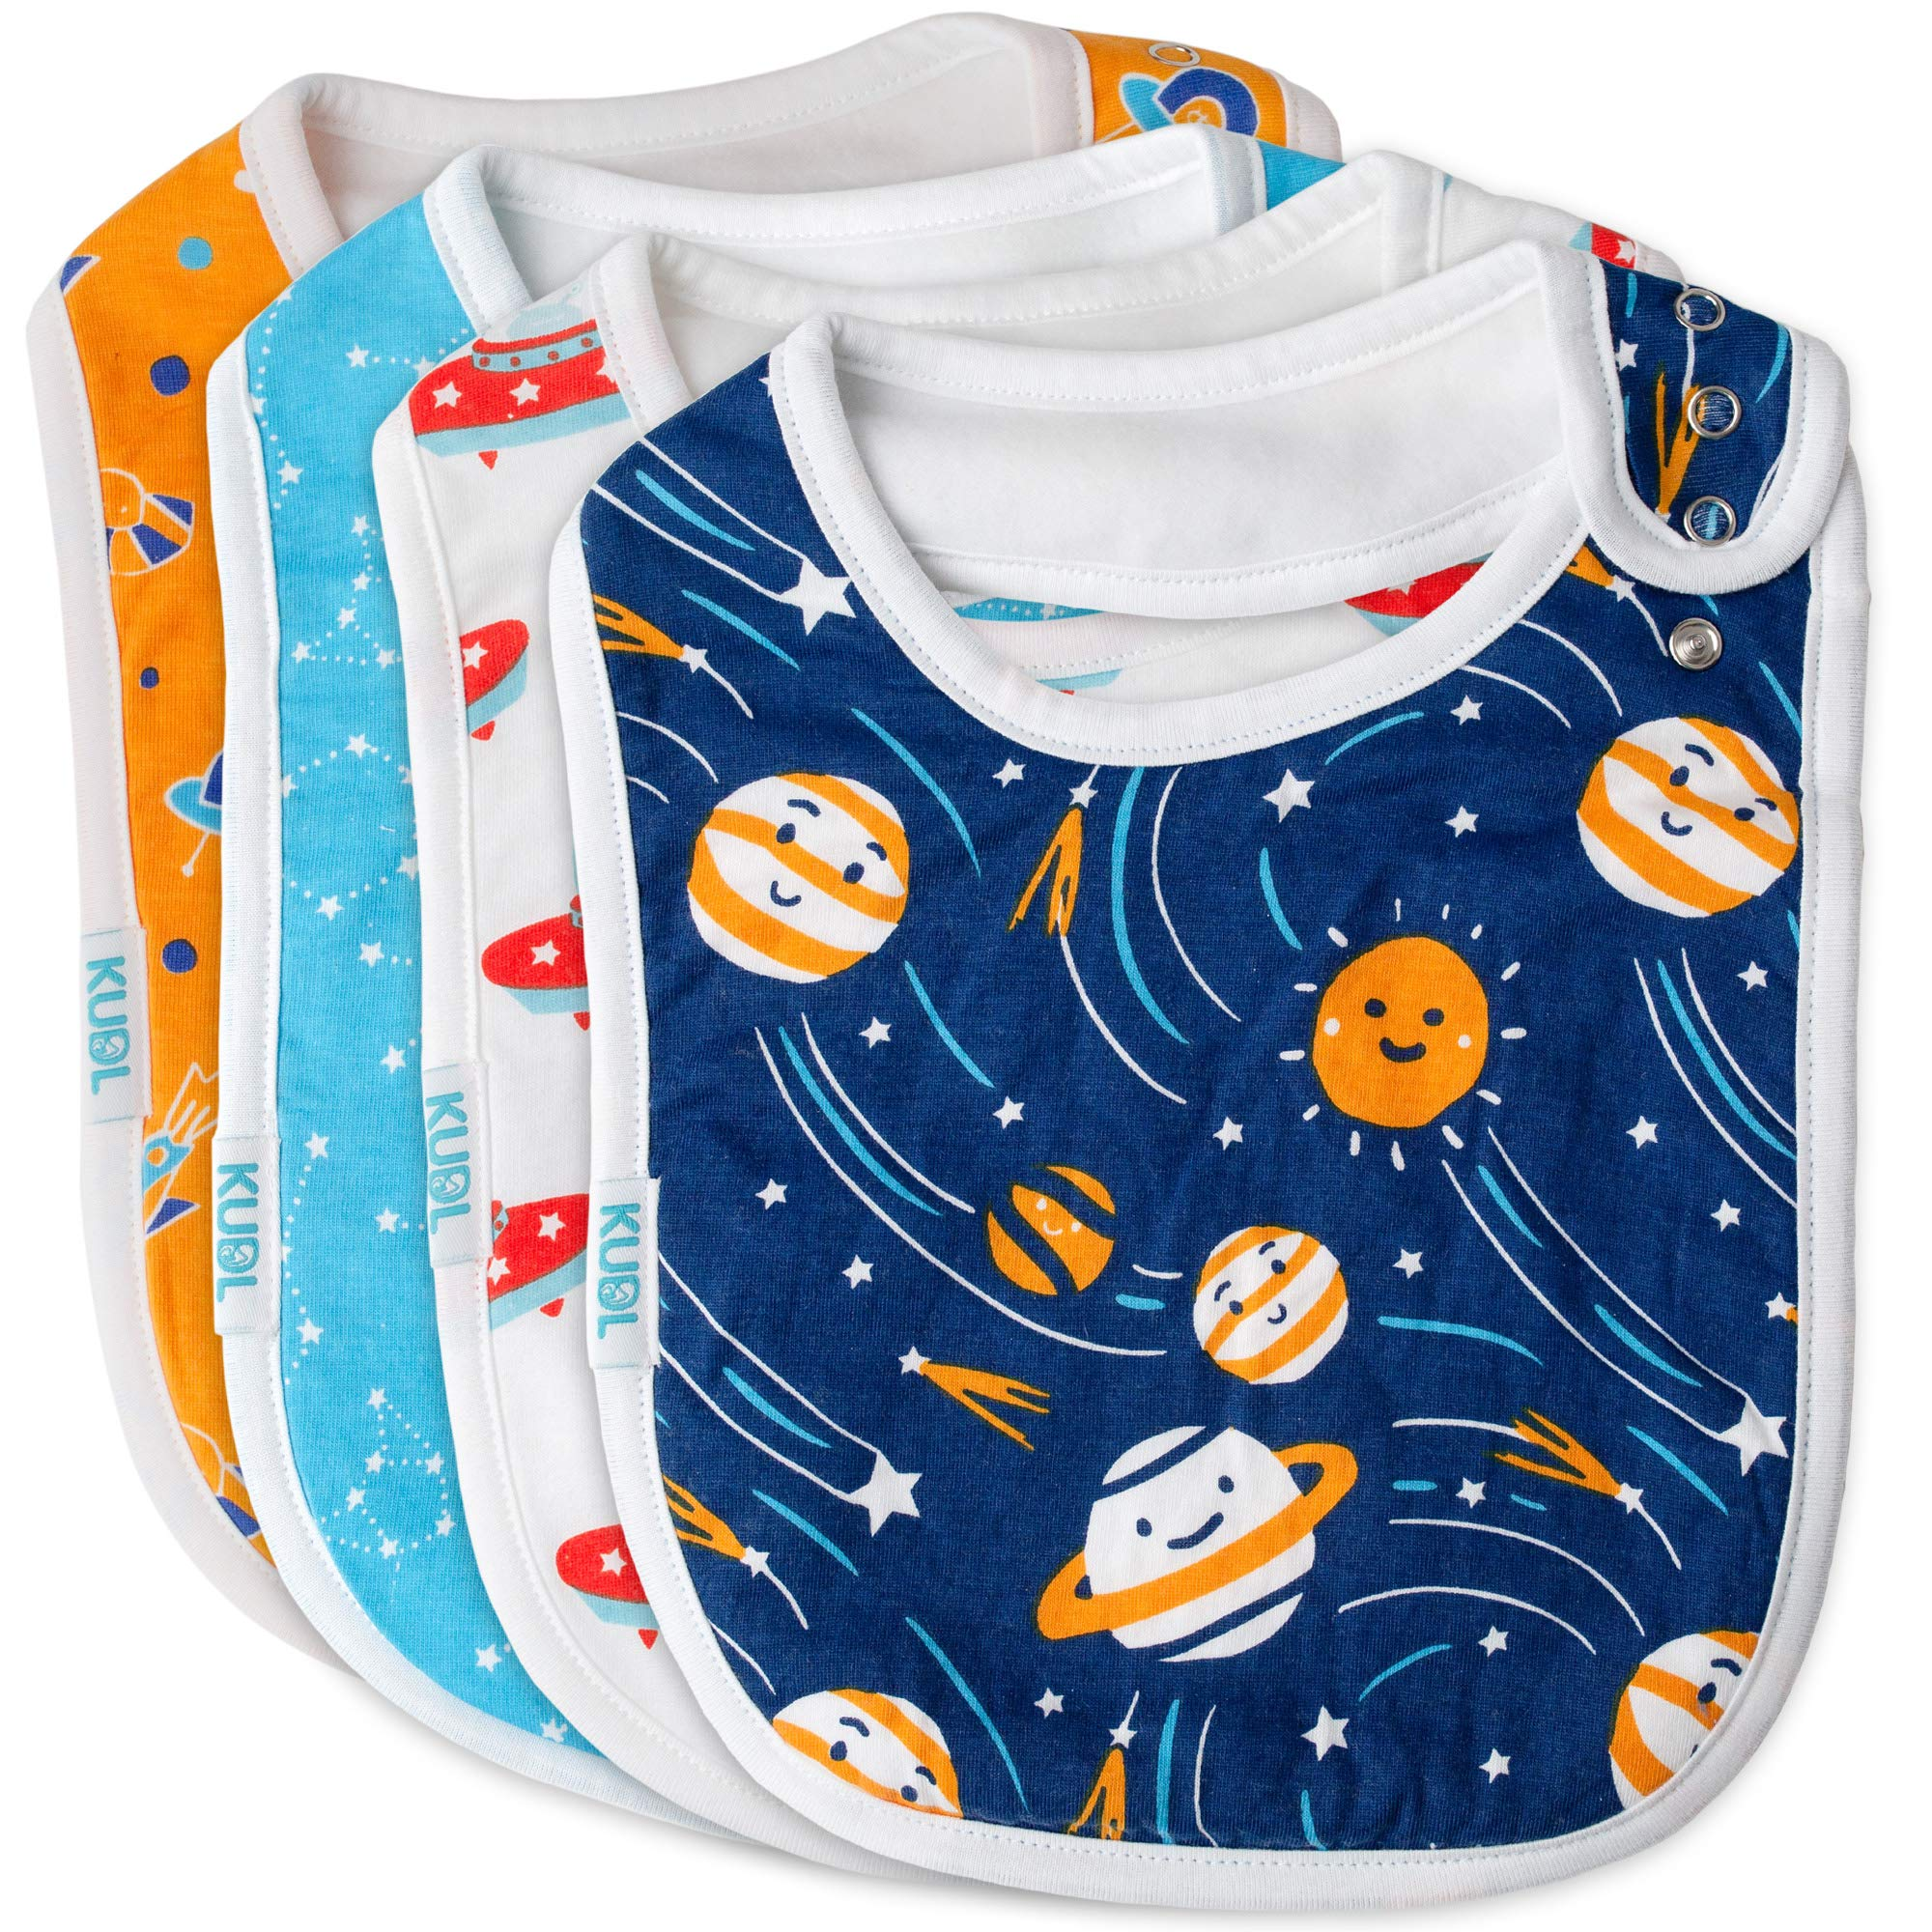 Fruit Prints, 0 to 6 Months Baby Lounge Infant Babies Bib 10-Pack Easy to Clean Soft Drool Absorbing